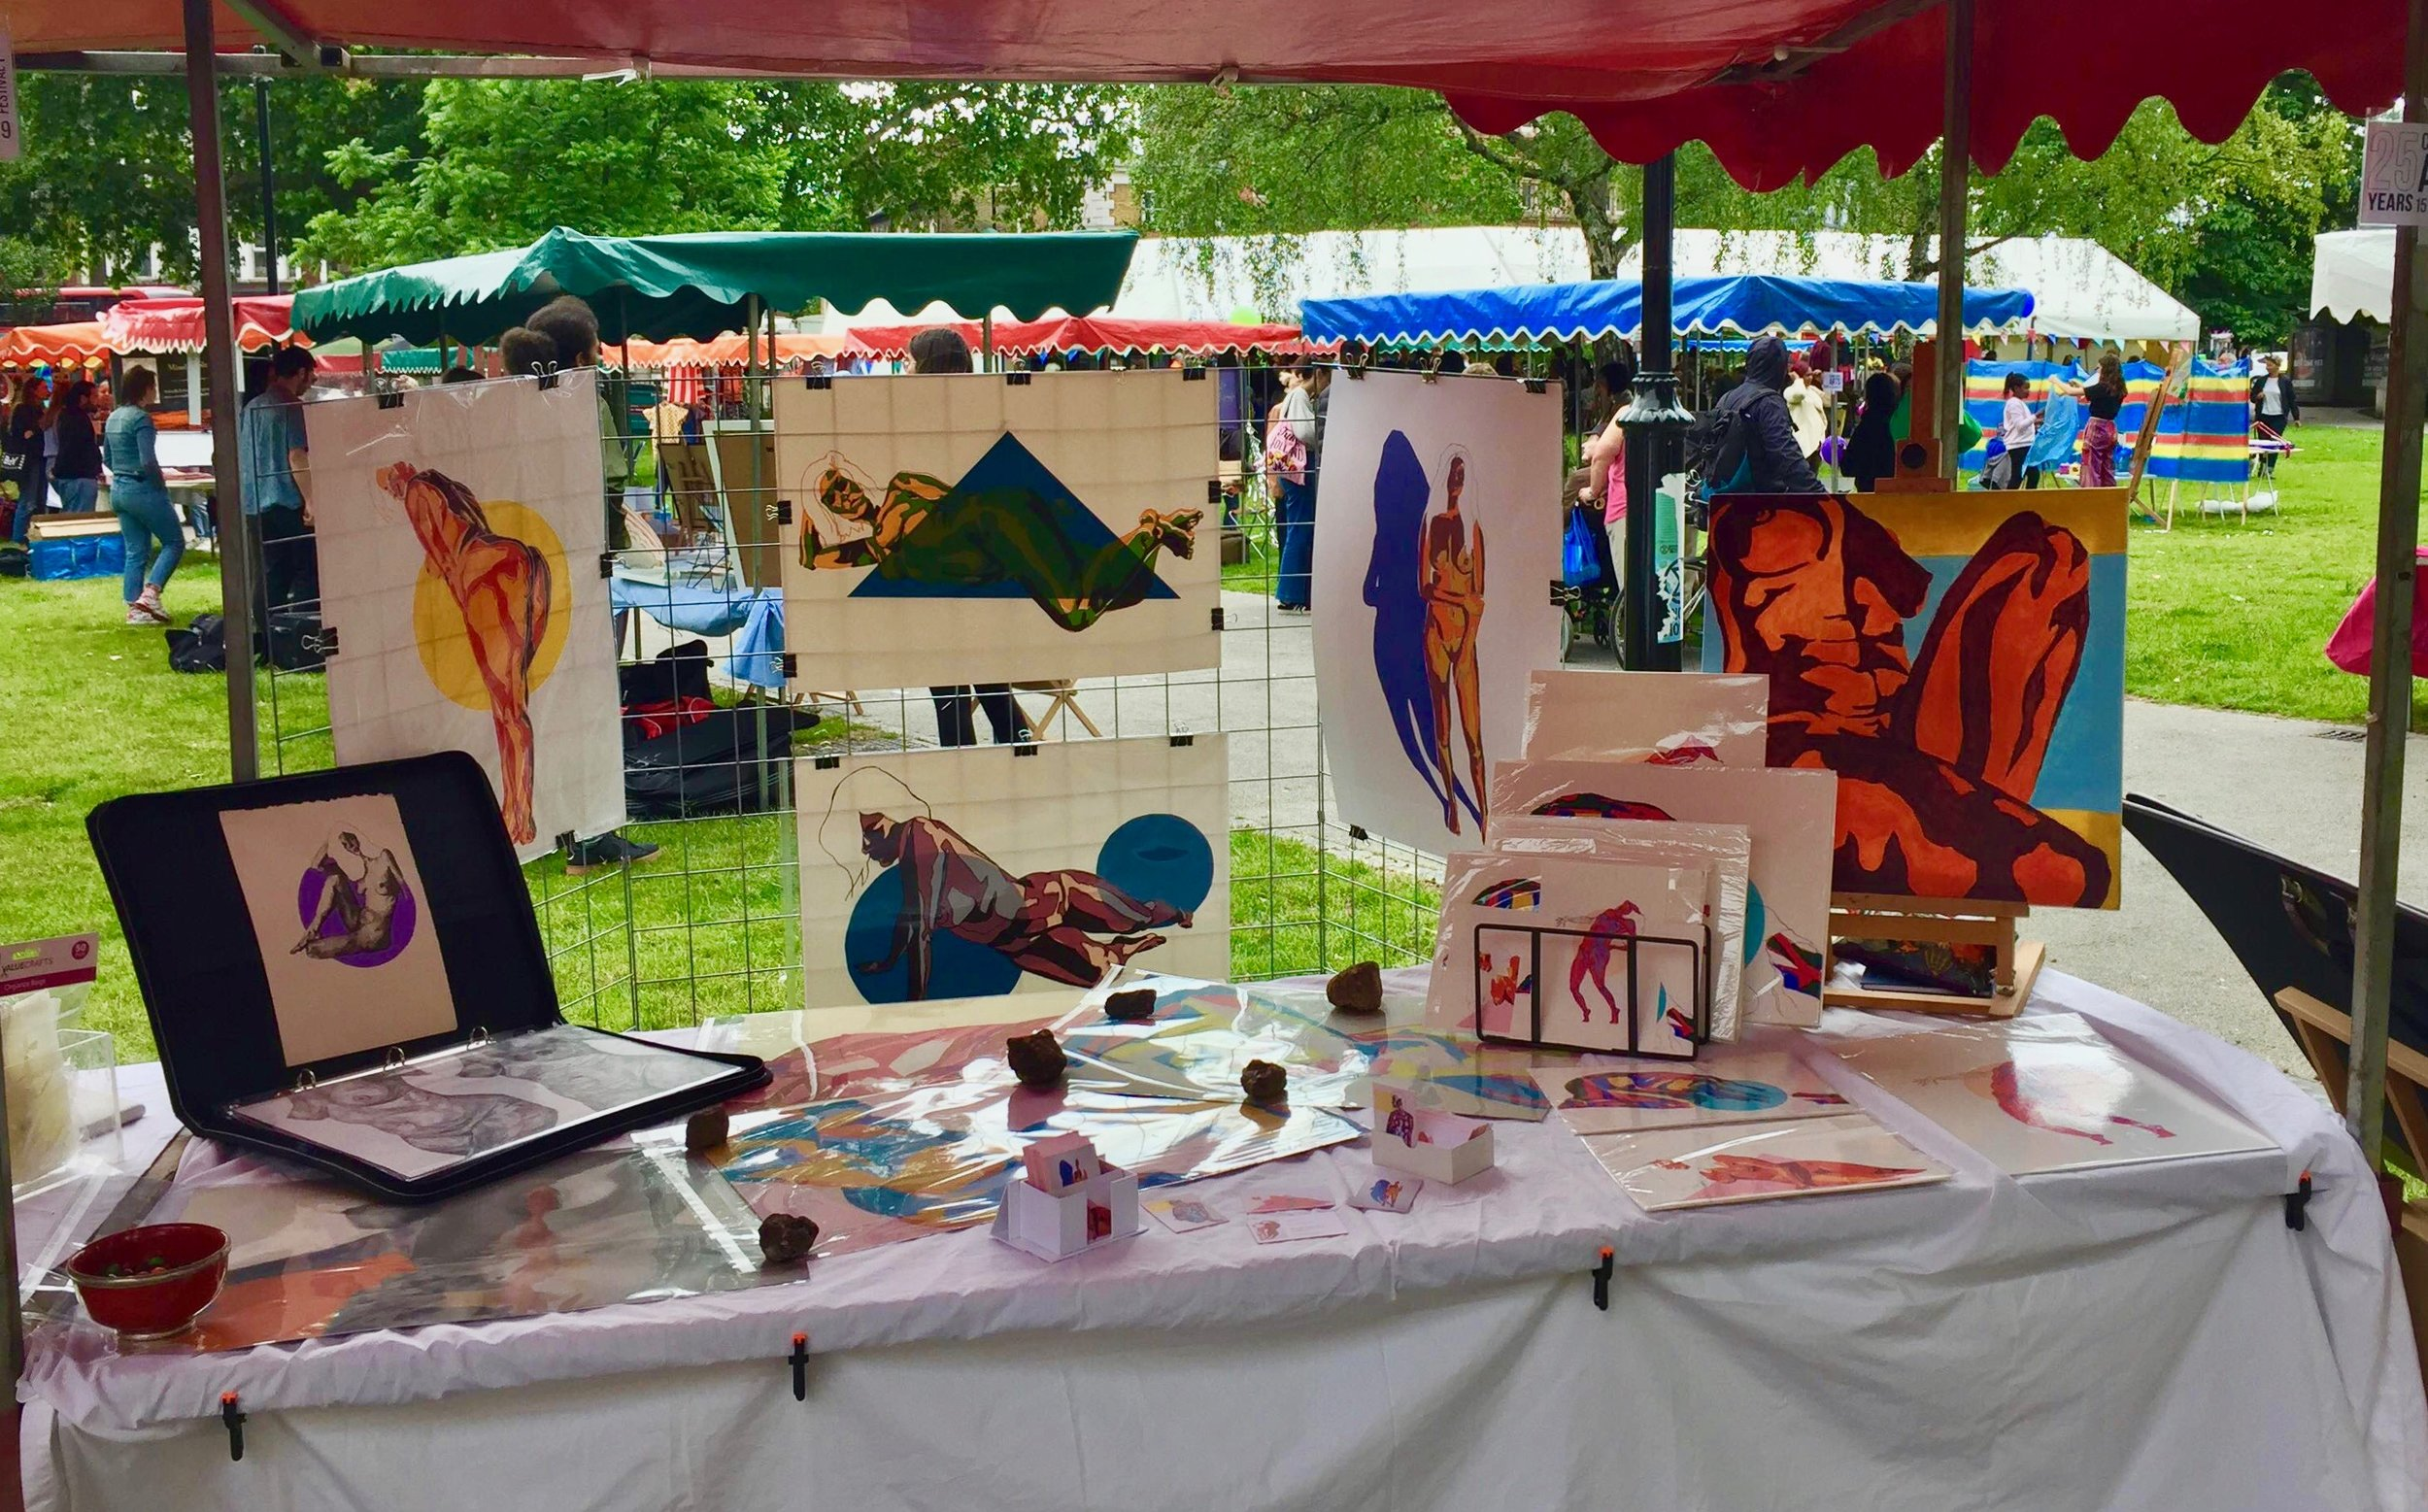 Leila's stall at the Camberwell Arts Market in London. June, 2019.